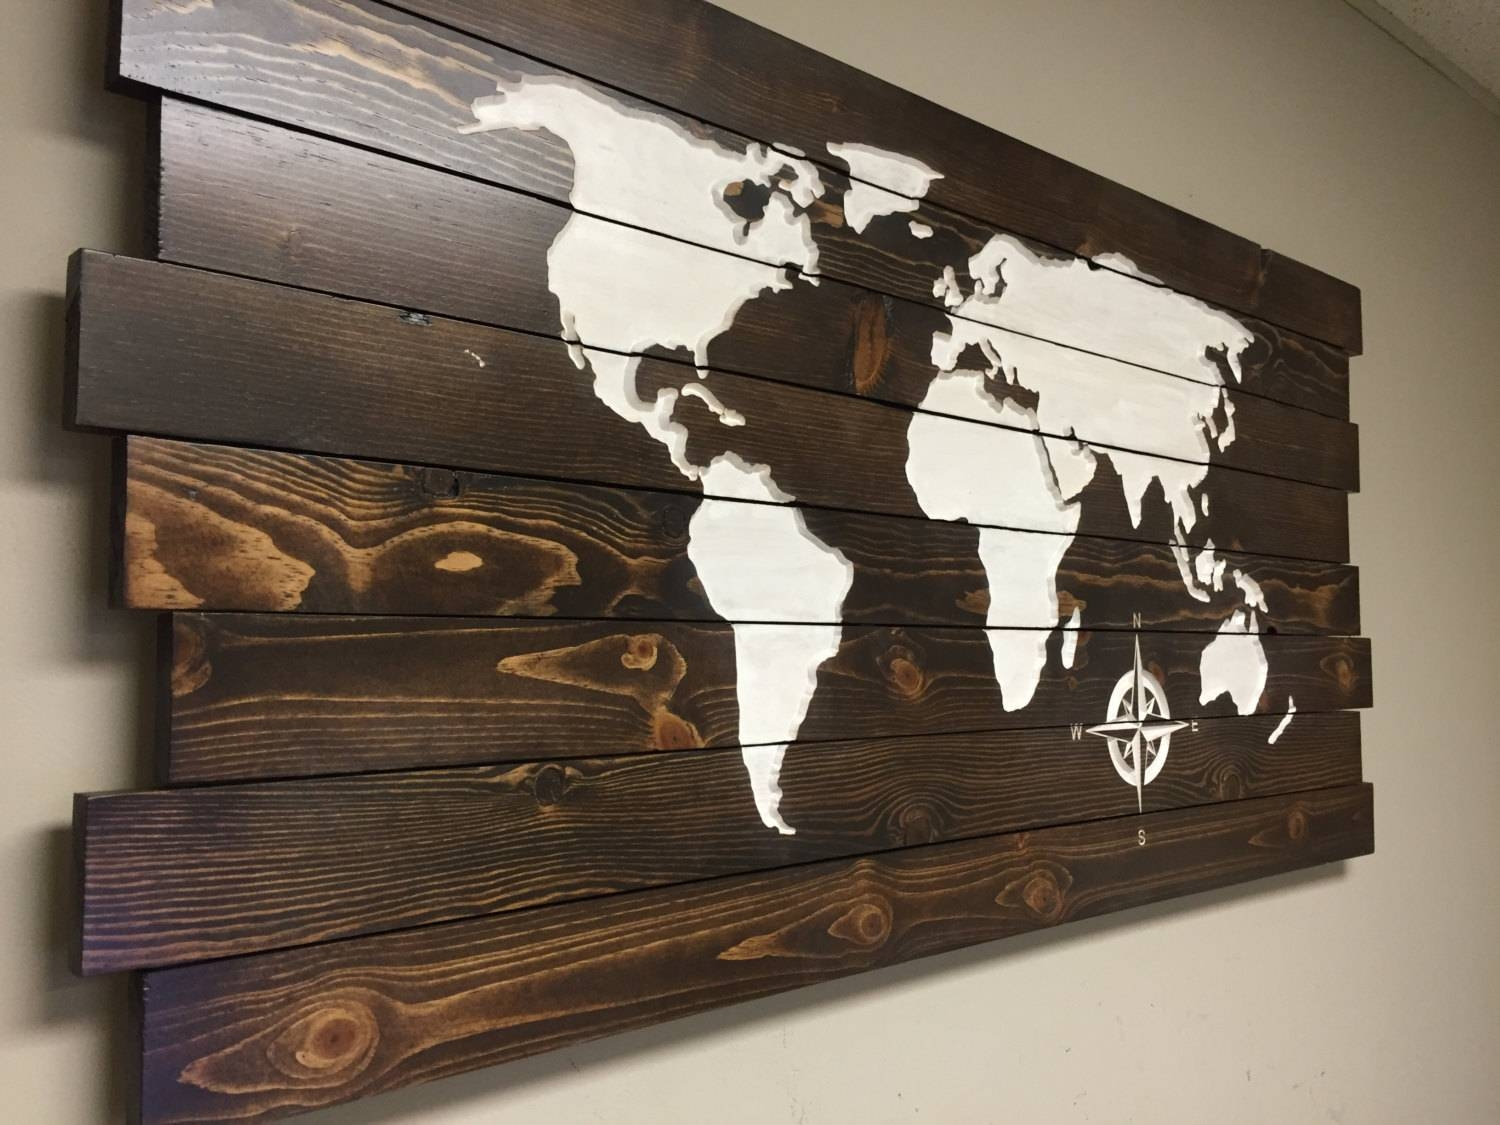 Pallet Sign World Map Carved Wood Wall Art Home Decor At Inside Most Recently Released World Map Wood Wall Art (View 12 of 20)